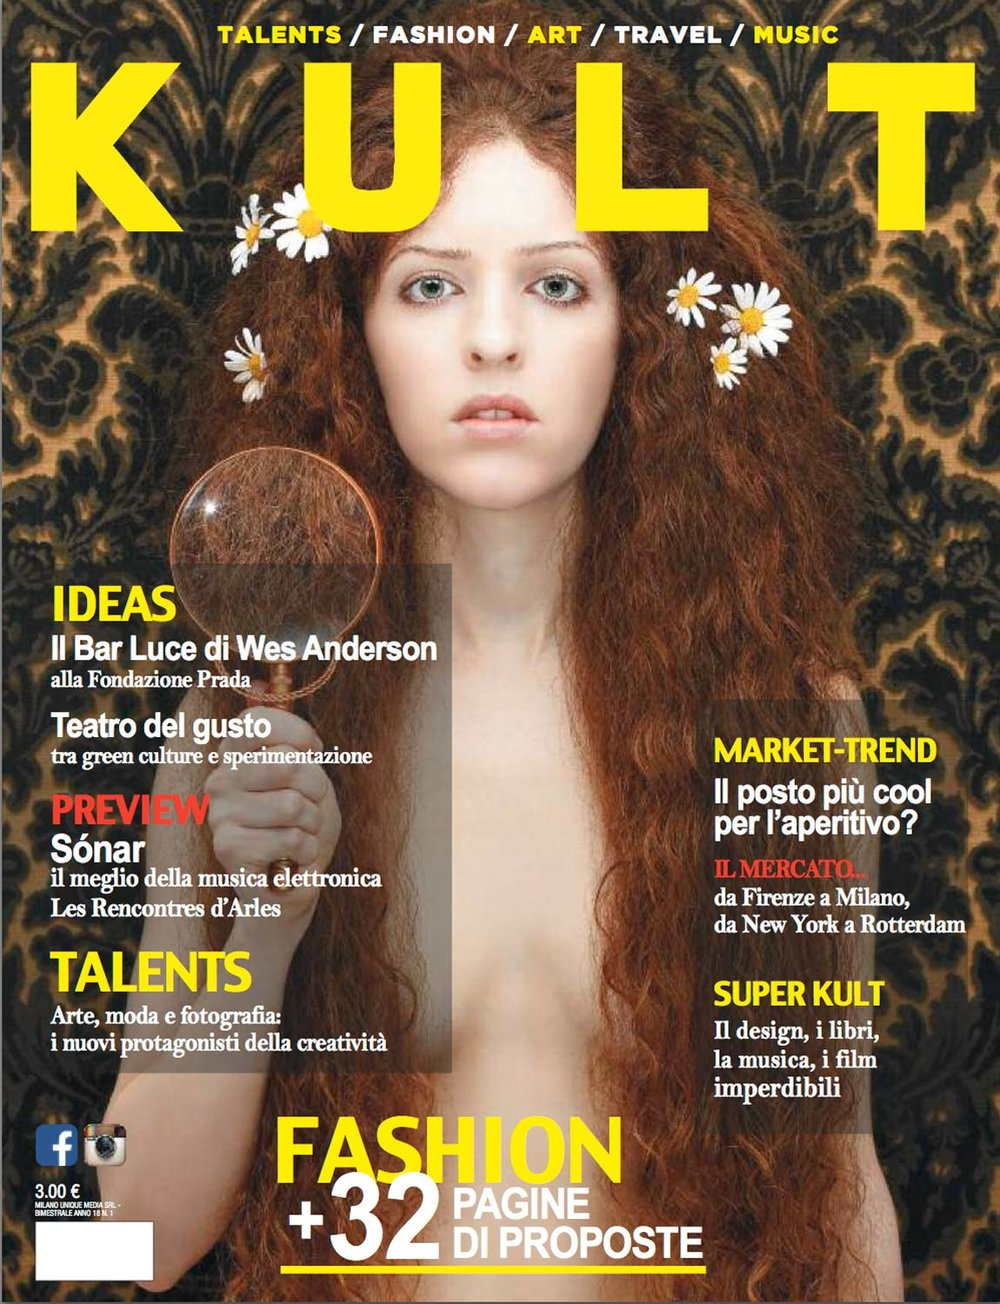 Tania-and-Lazlo-cover-on-Kult-Magazine.jpg